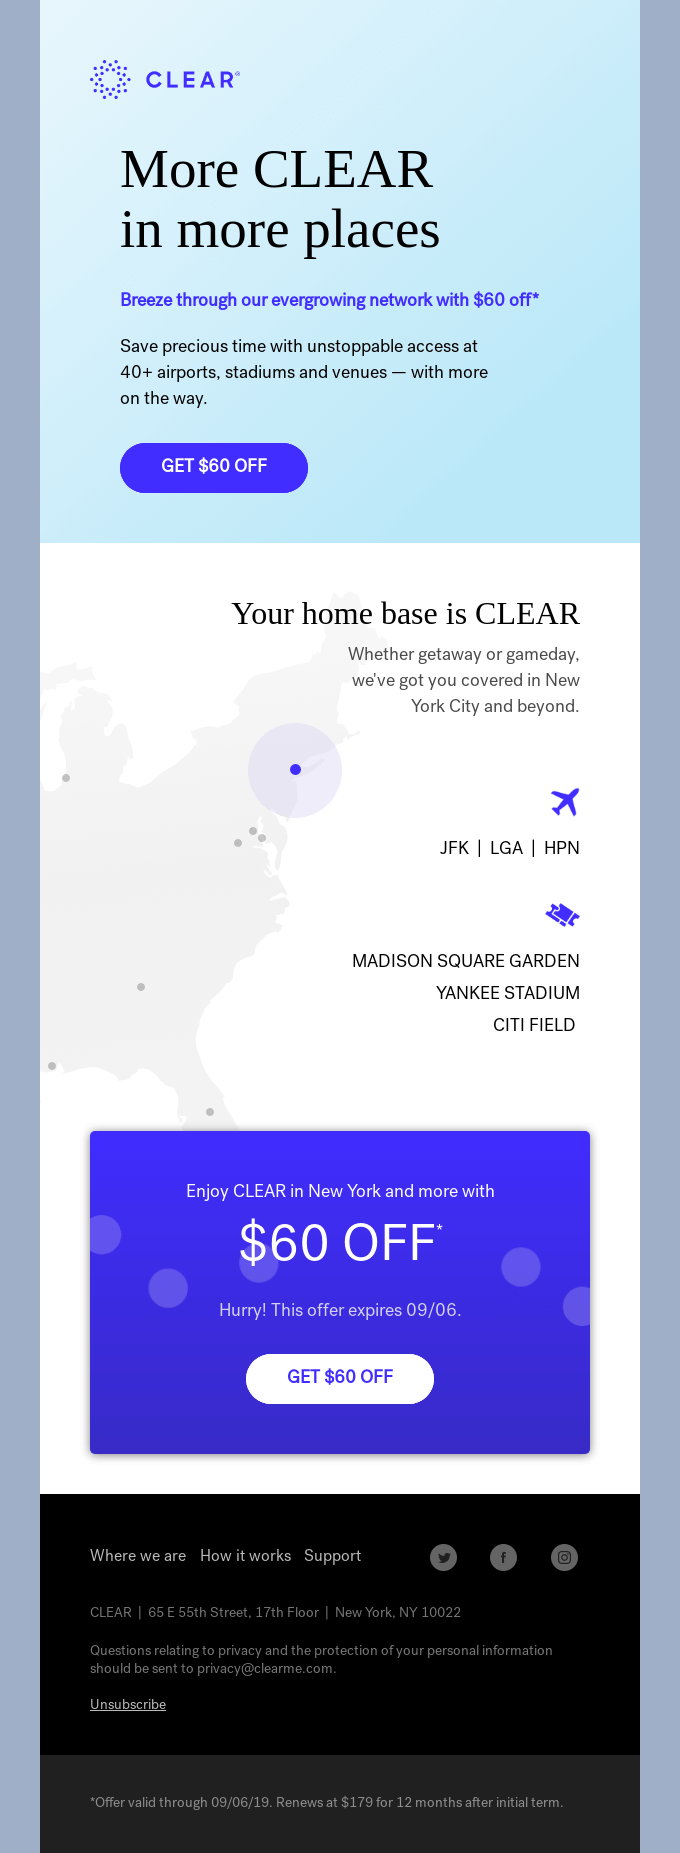 More CLEAR for $60 off